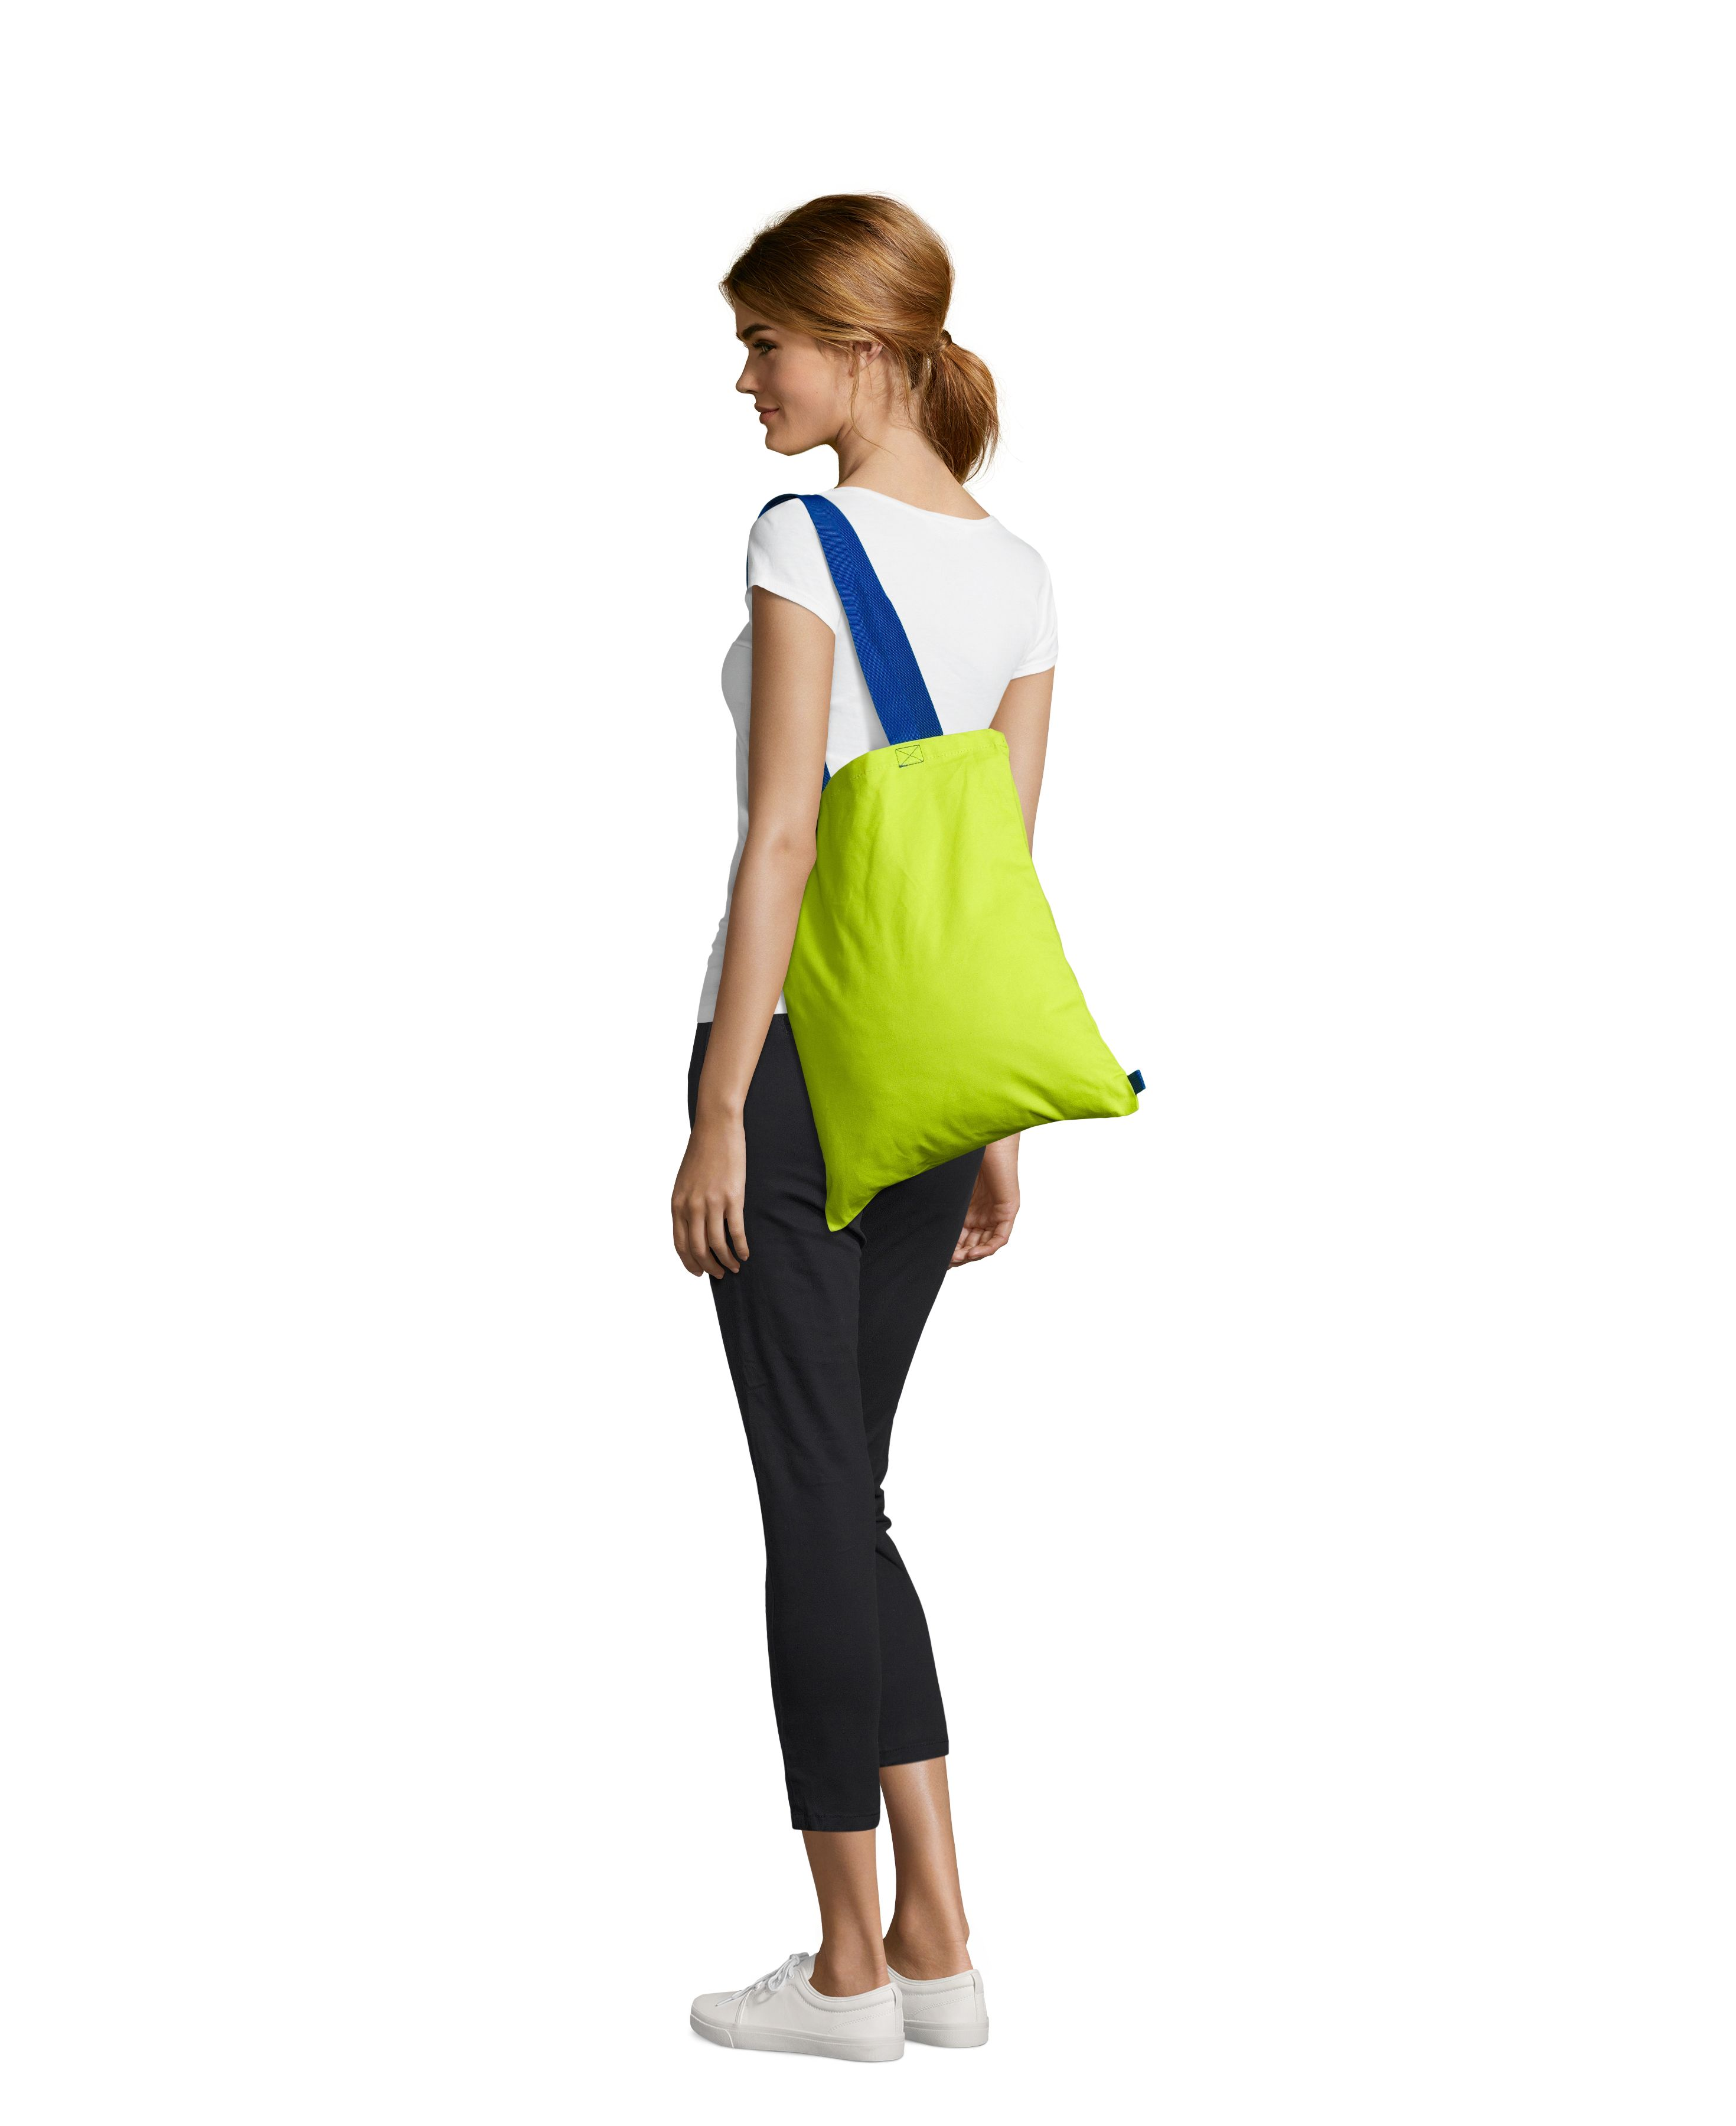 887 - Neon lime / Royal blue